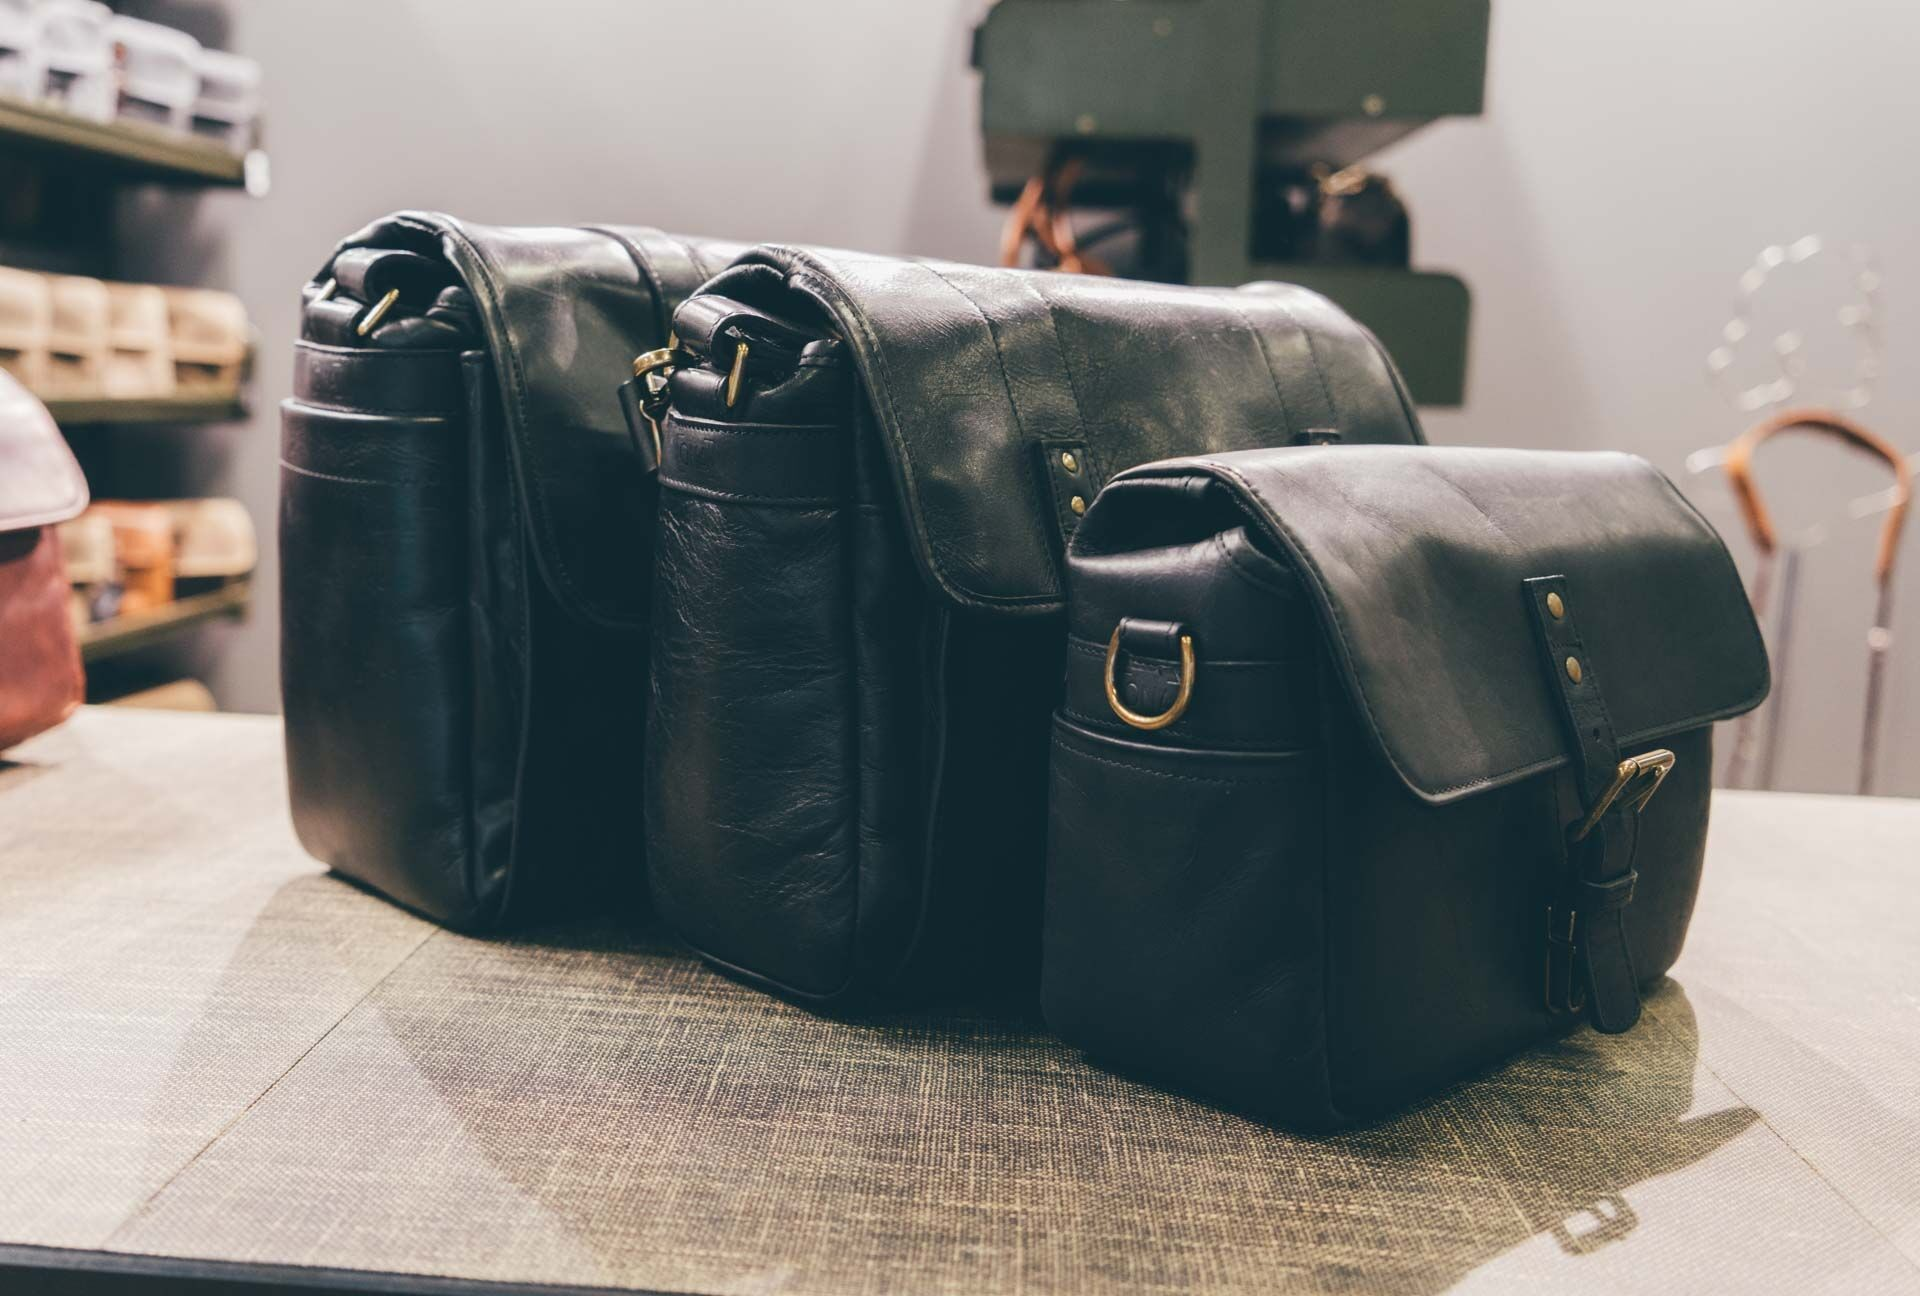 Now all of the classic messenger bags from ONA come in black leather, too.